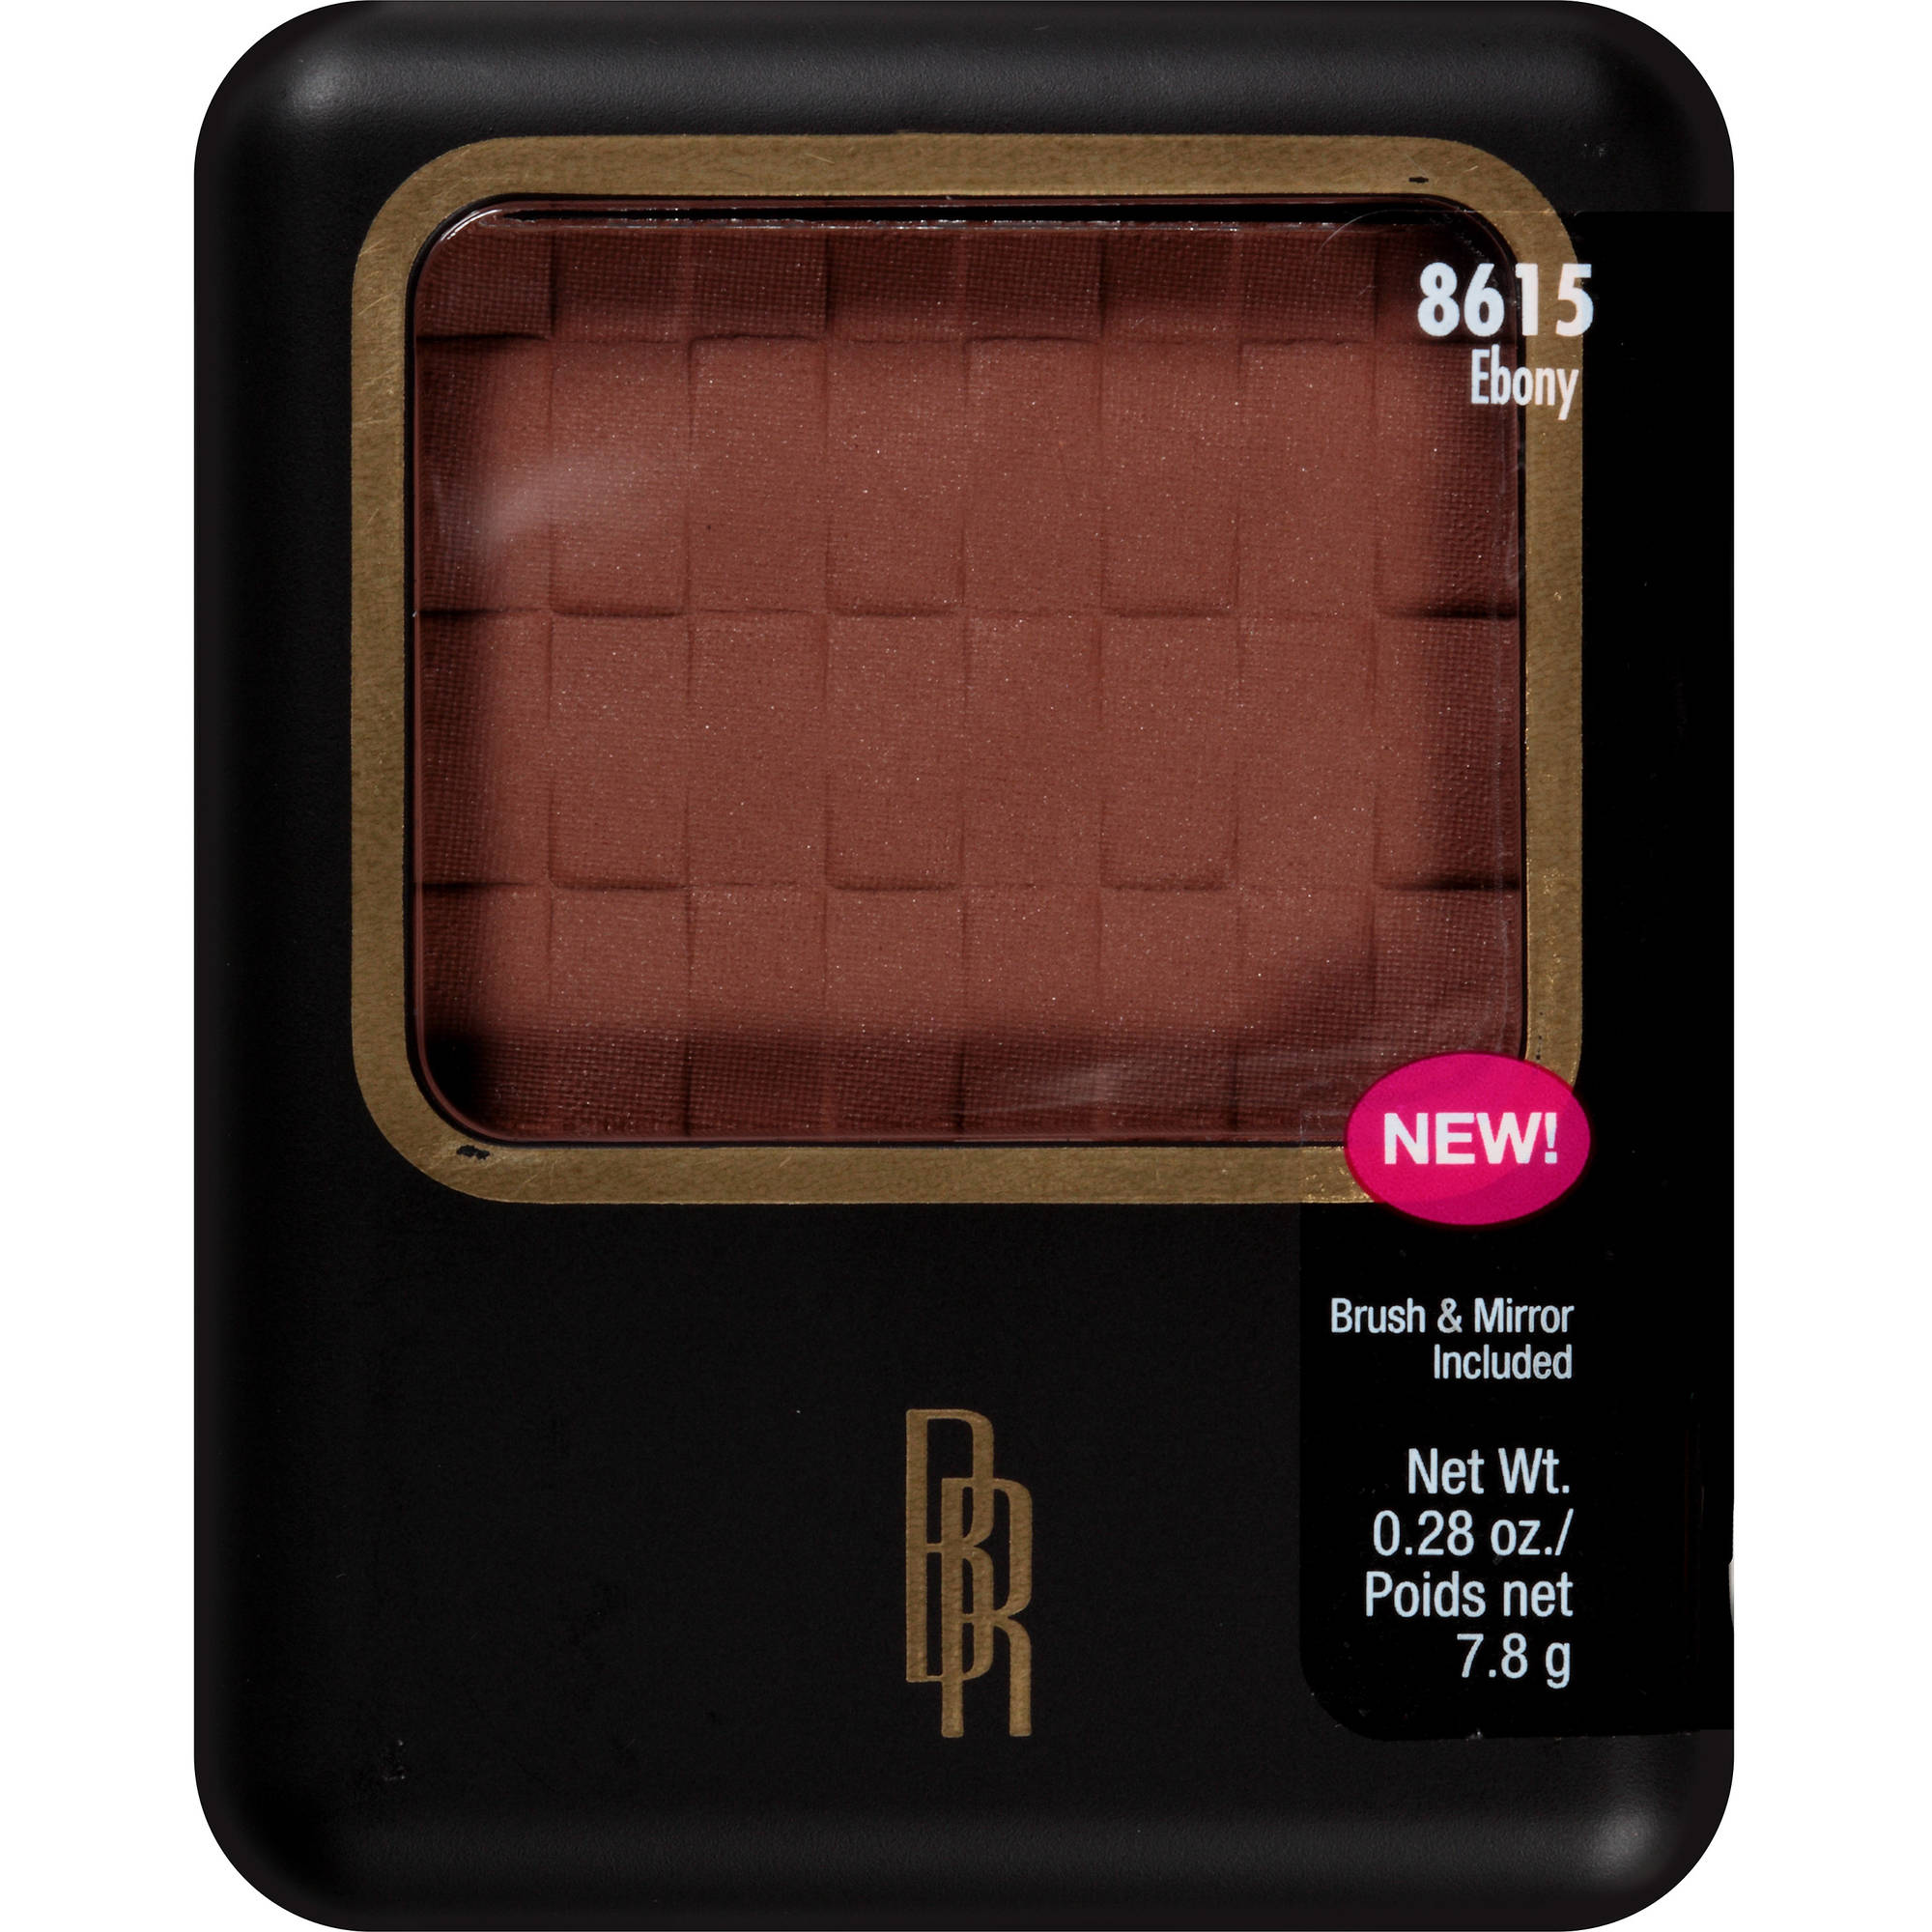 Black Radiance Pressed Facial Powder, Ebony, 0.28 oz